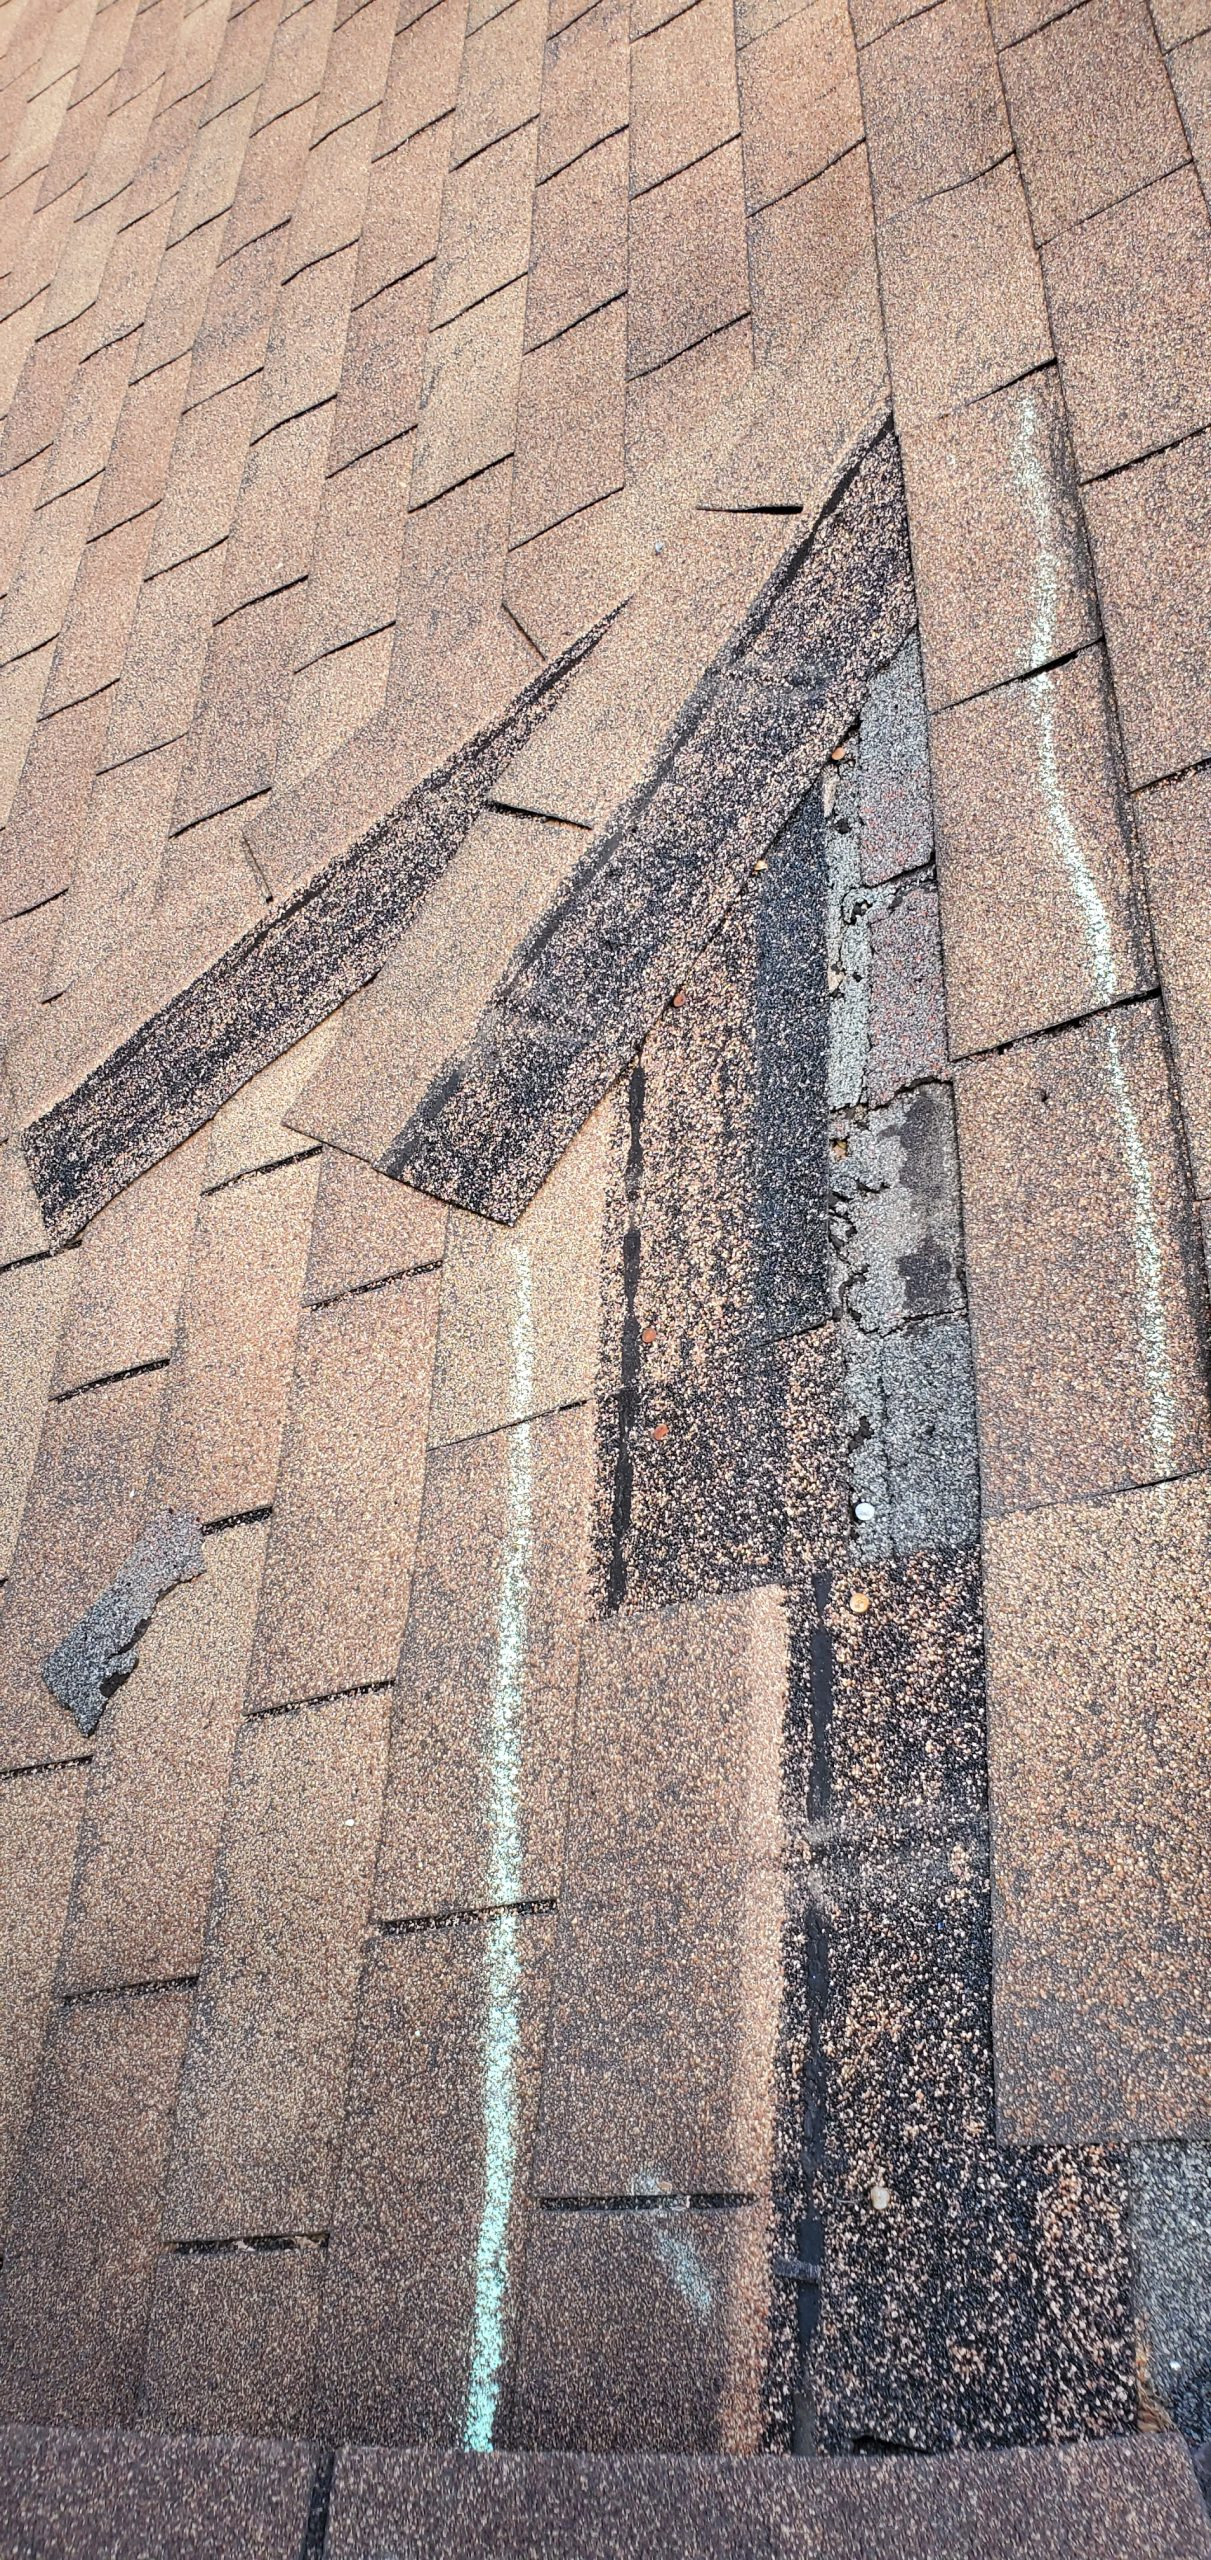 this is a picture of shingles that are blowing off of a roof in knovxille tn